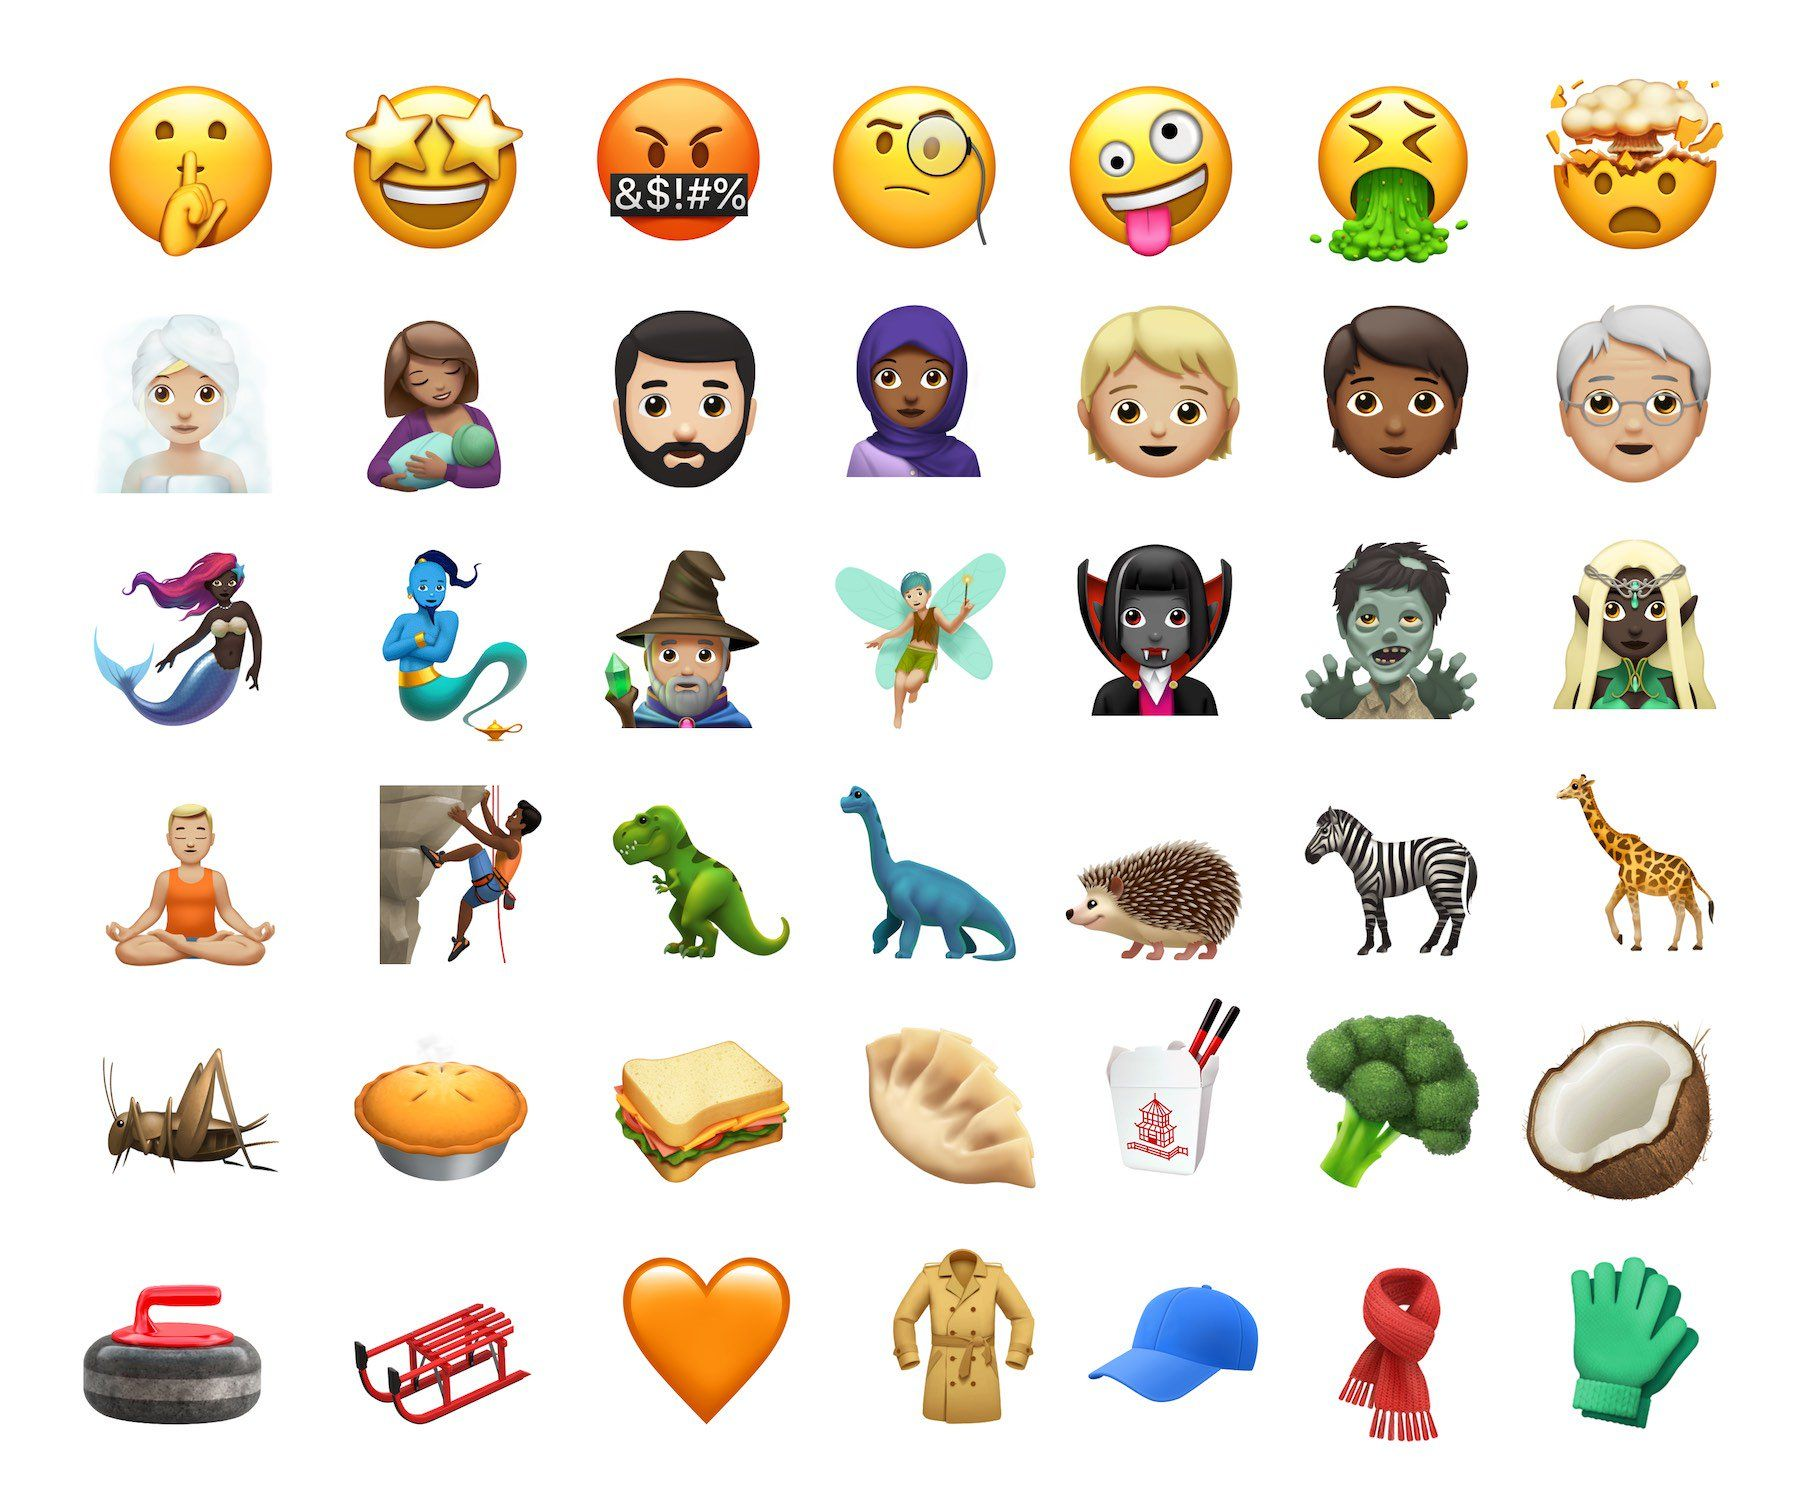 Ios 11 1 Adds New Emojis From Apple Including Giraffe Face Vomiting Genie Sauropod Dinosaur And More No Web Agency